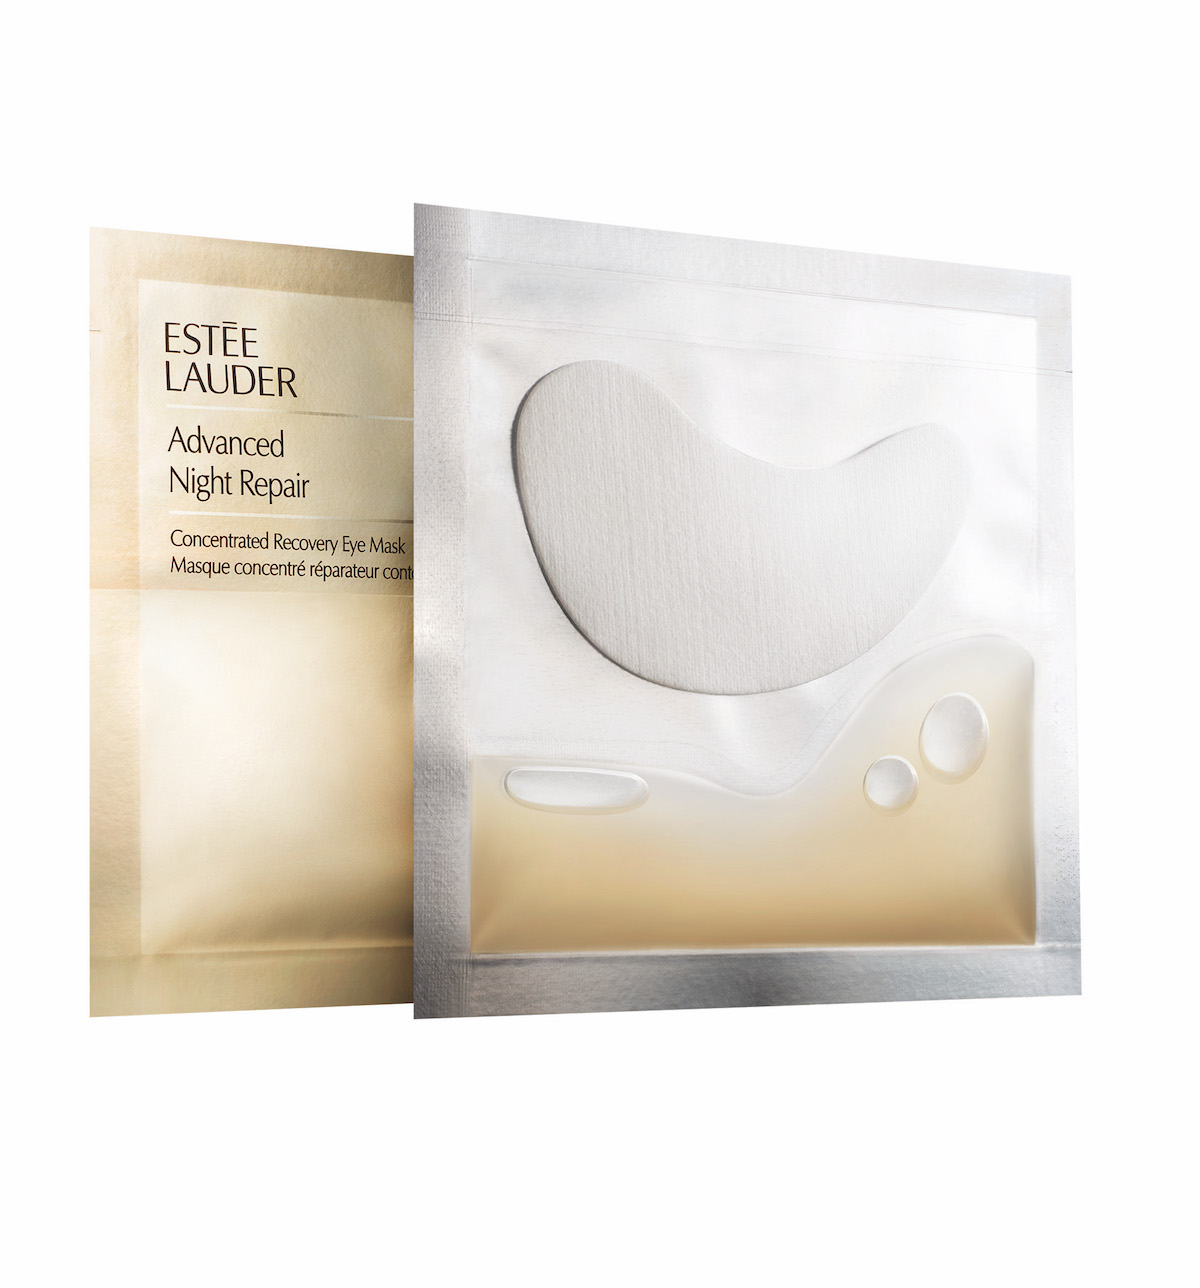 EsteeLauder_Advanced+Night+Repair+Eye+Mask_Product+on+White_Global_Expiry+January+2018 (1)